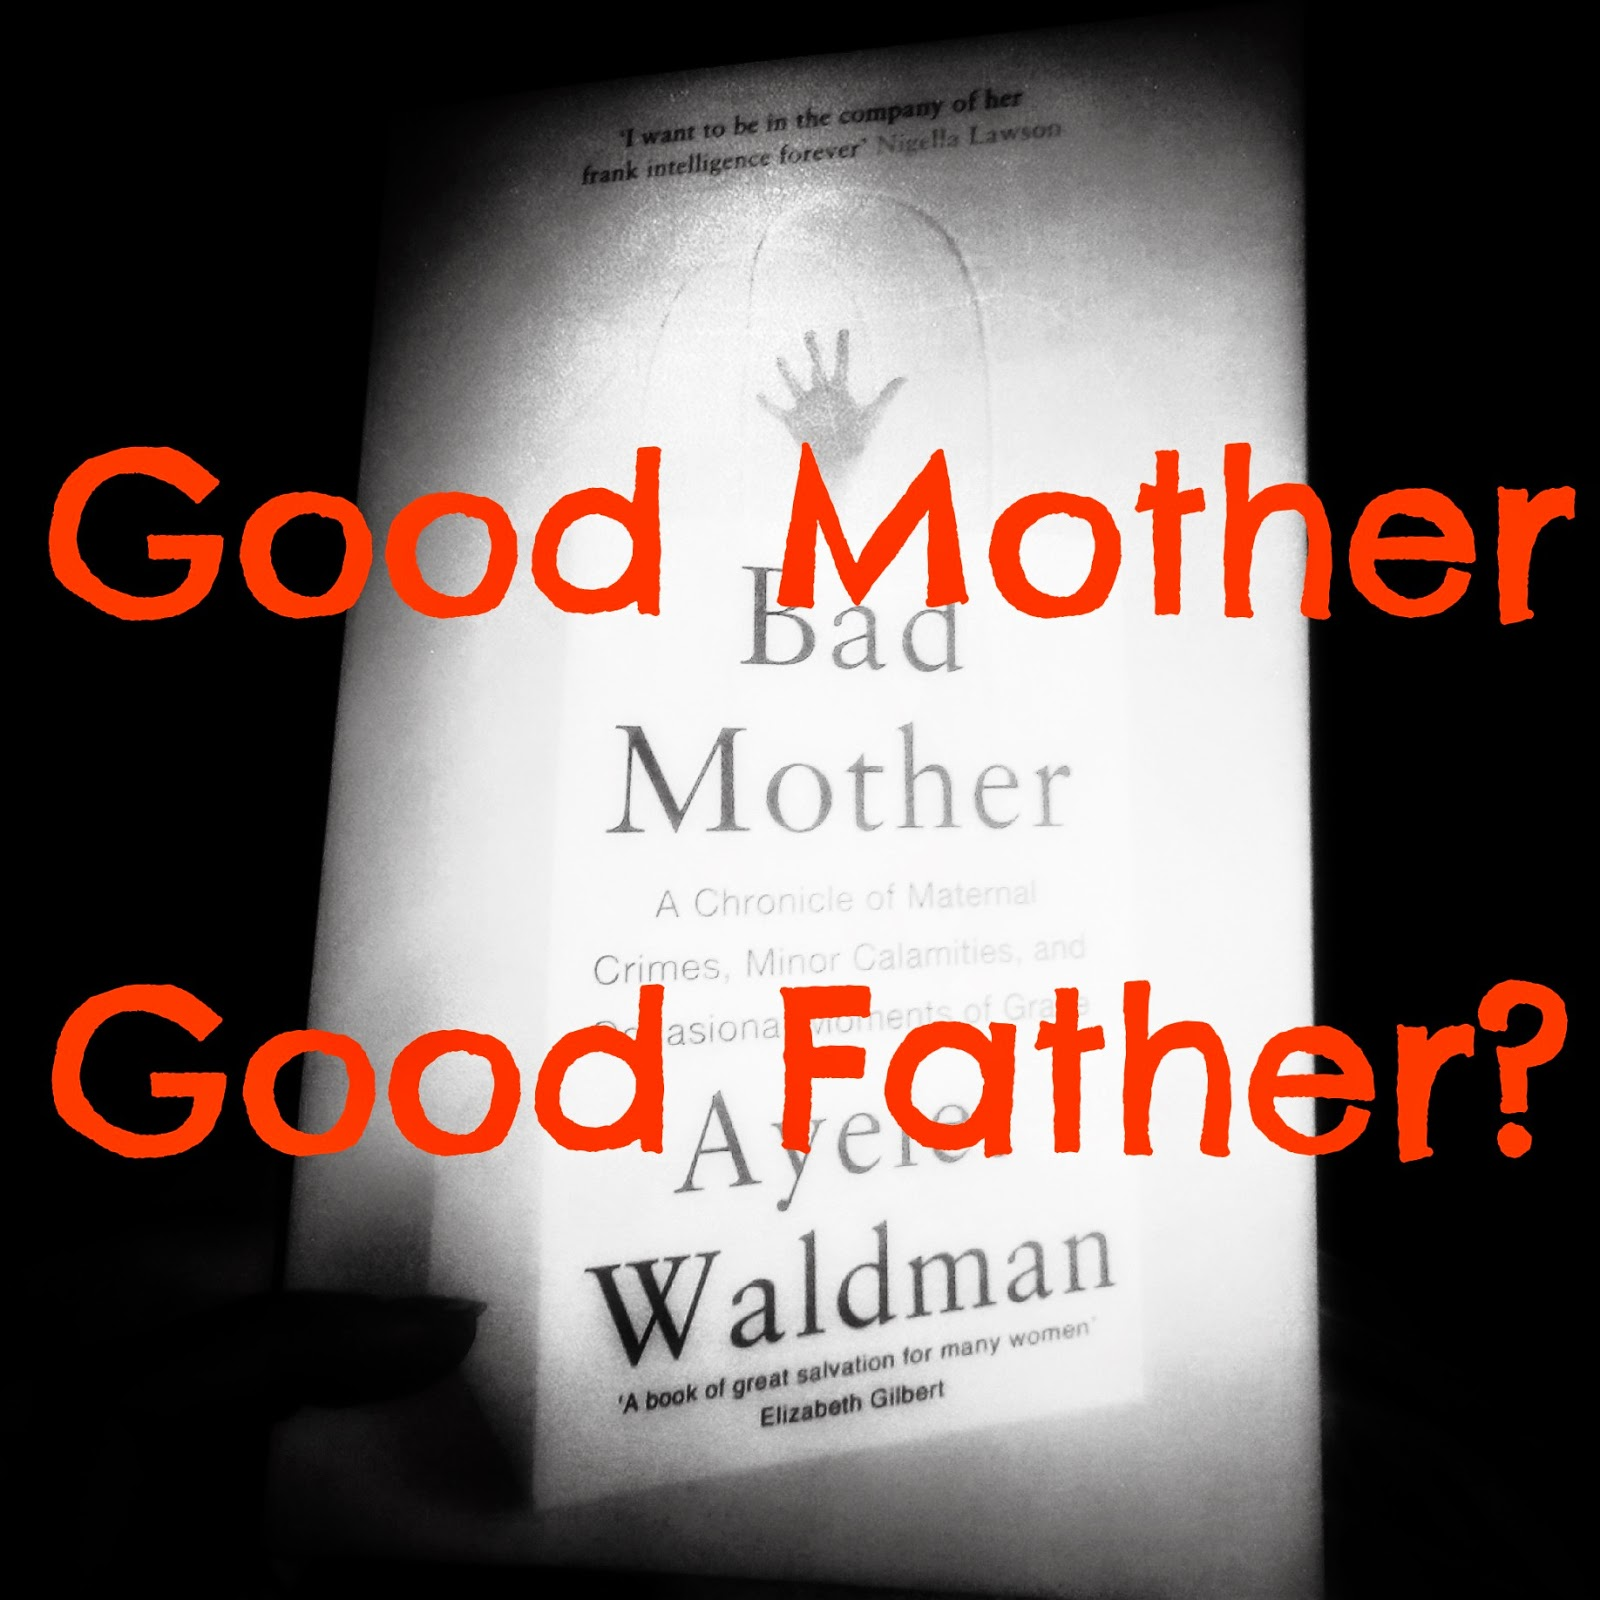 Difference between good mother/good father Ayelet Waldman